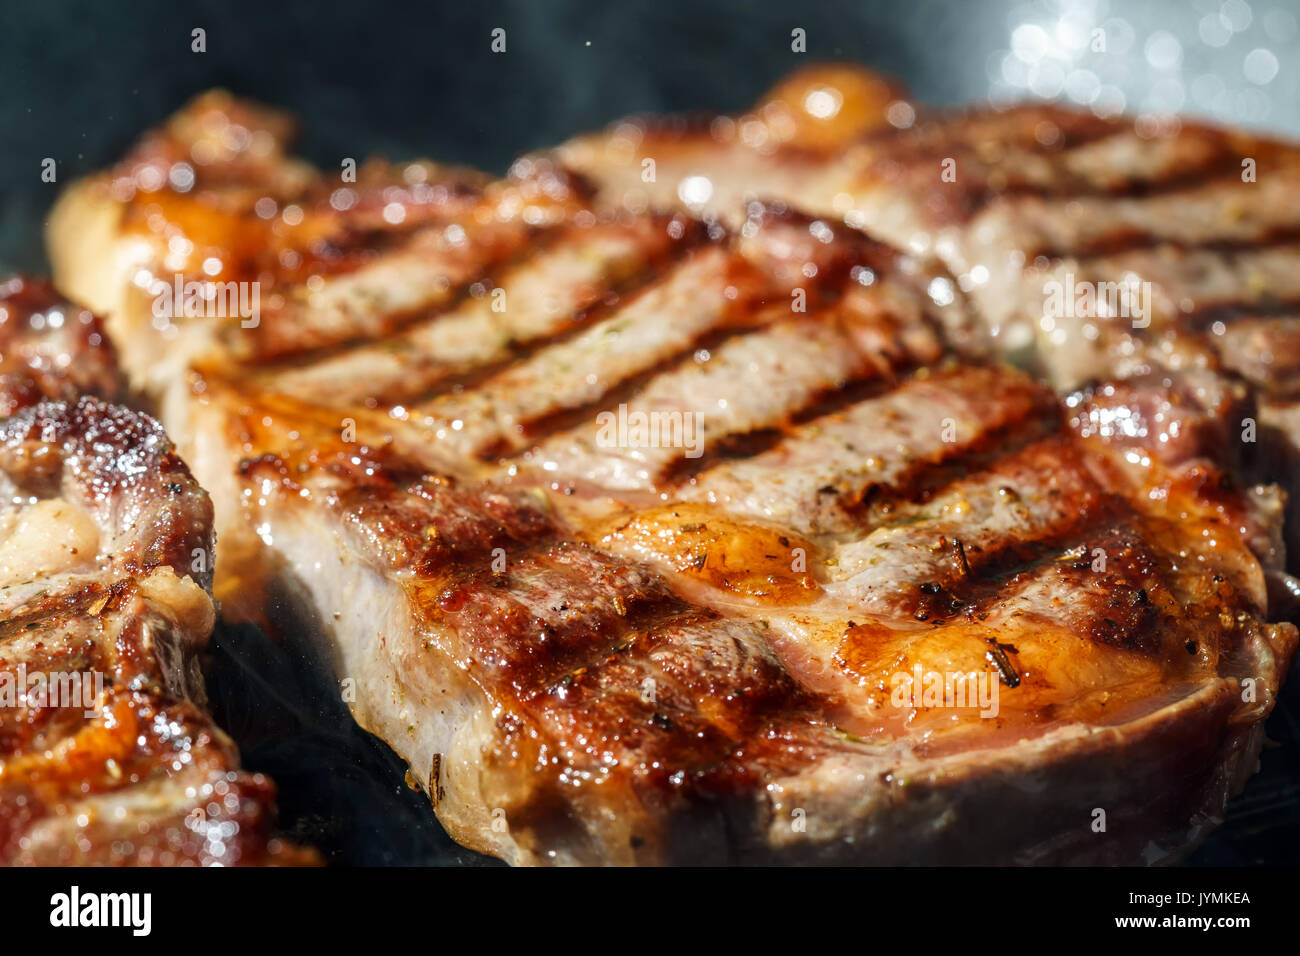 Raw Ribeye Steak with Herbs and Spices, frying on grill pan. Stock Photo